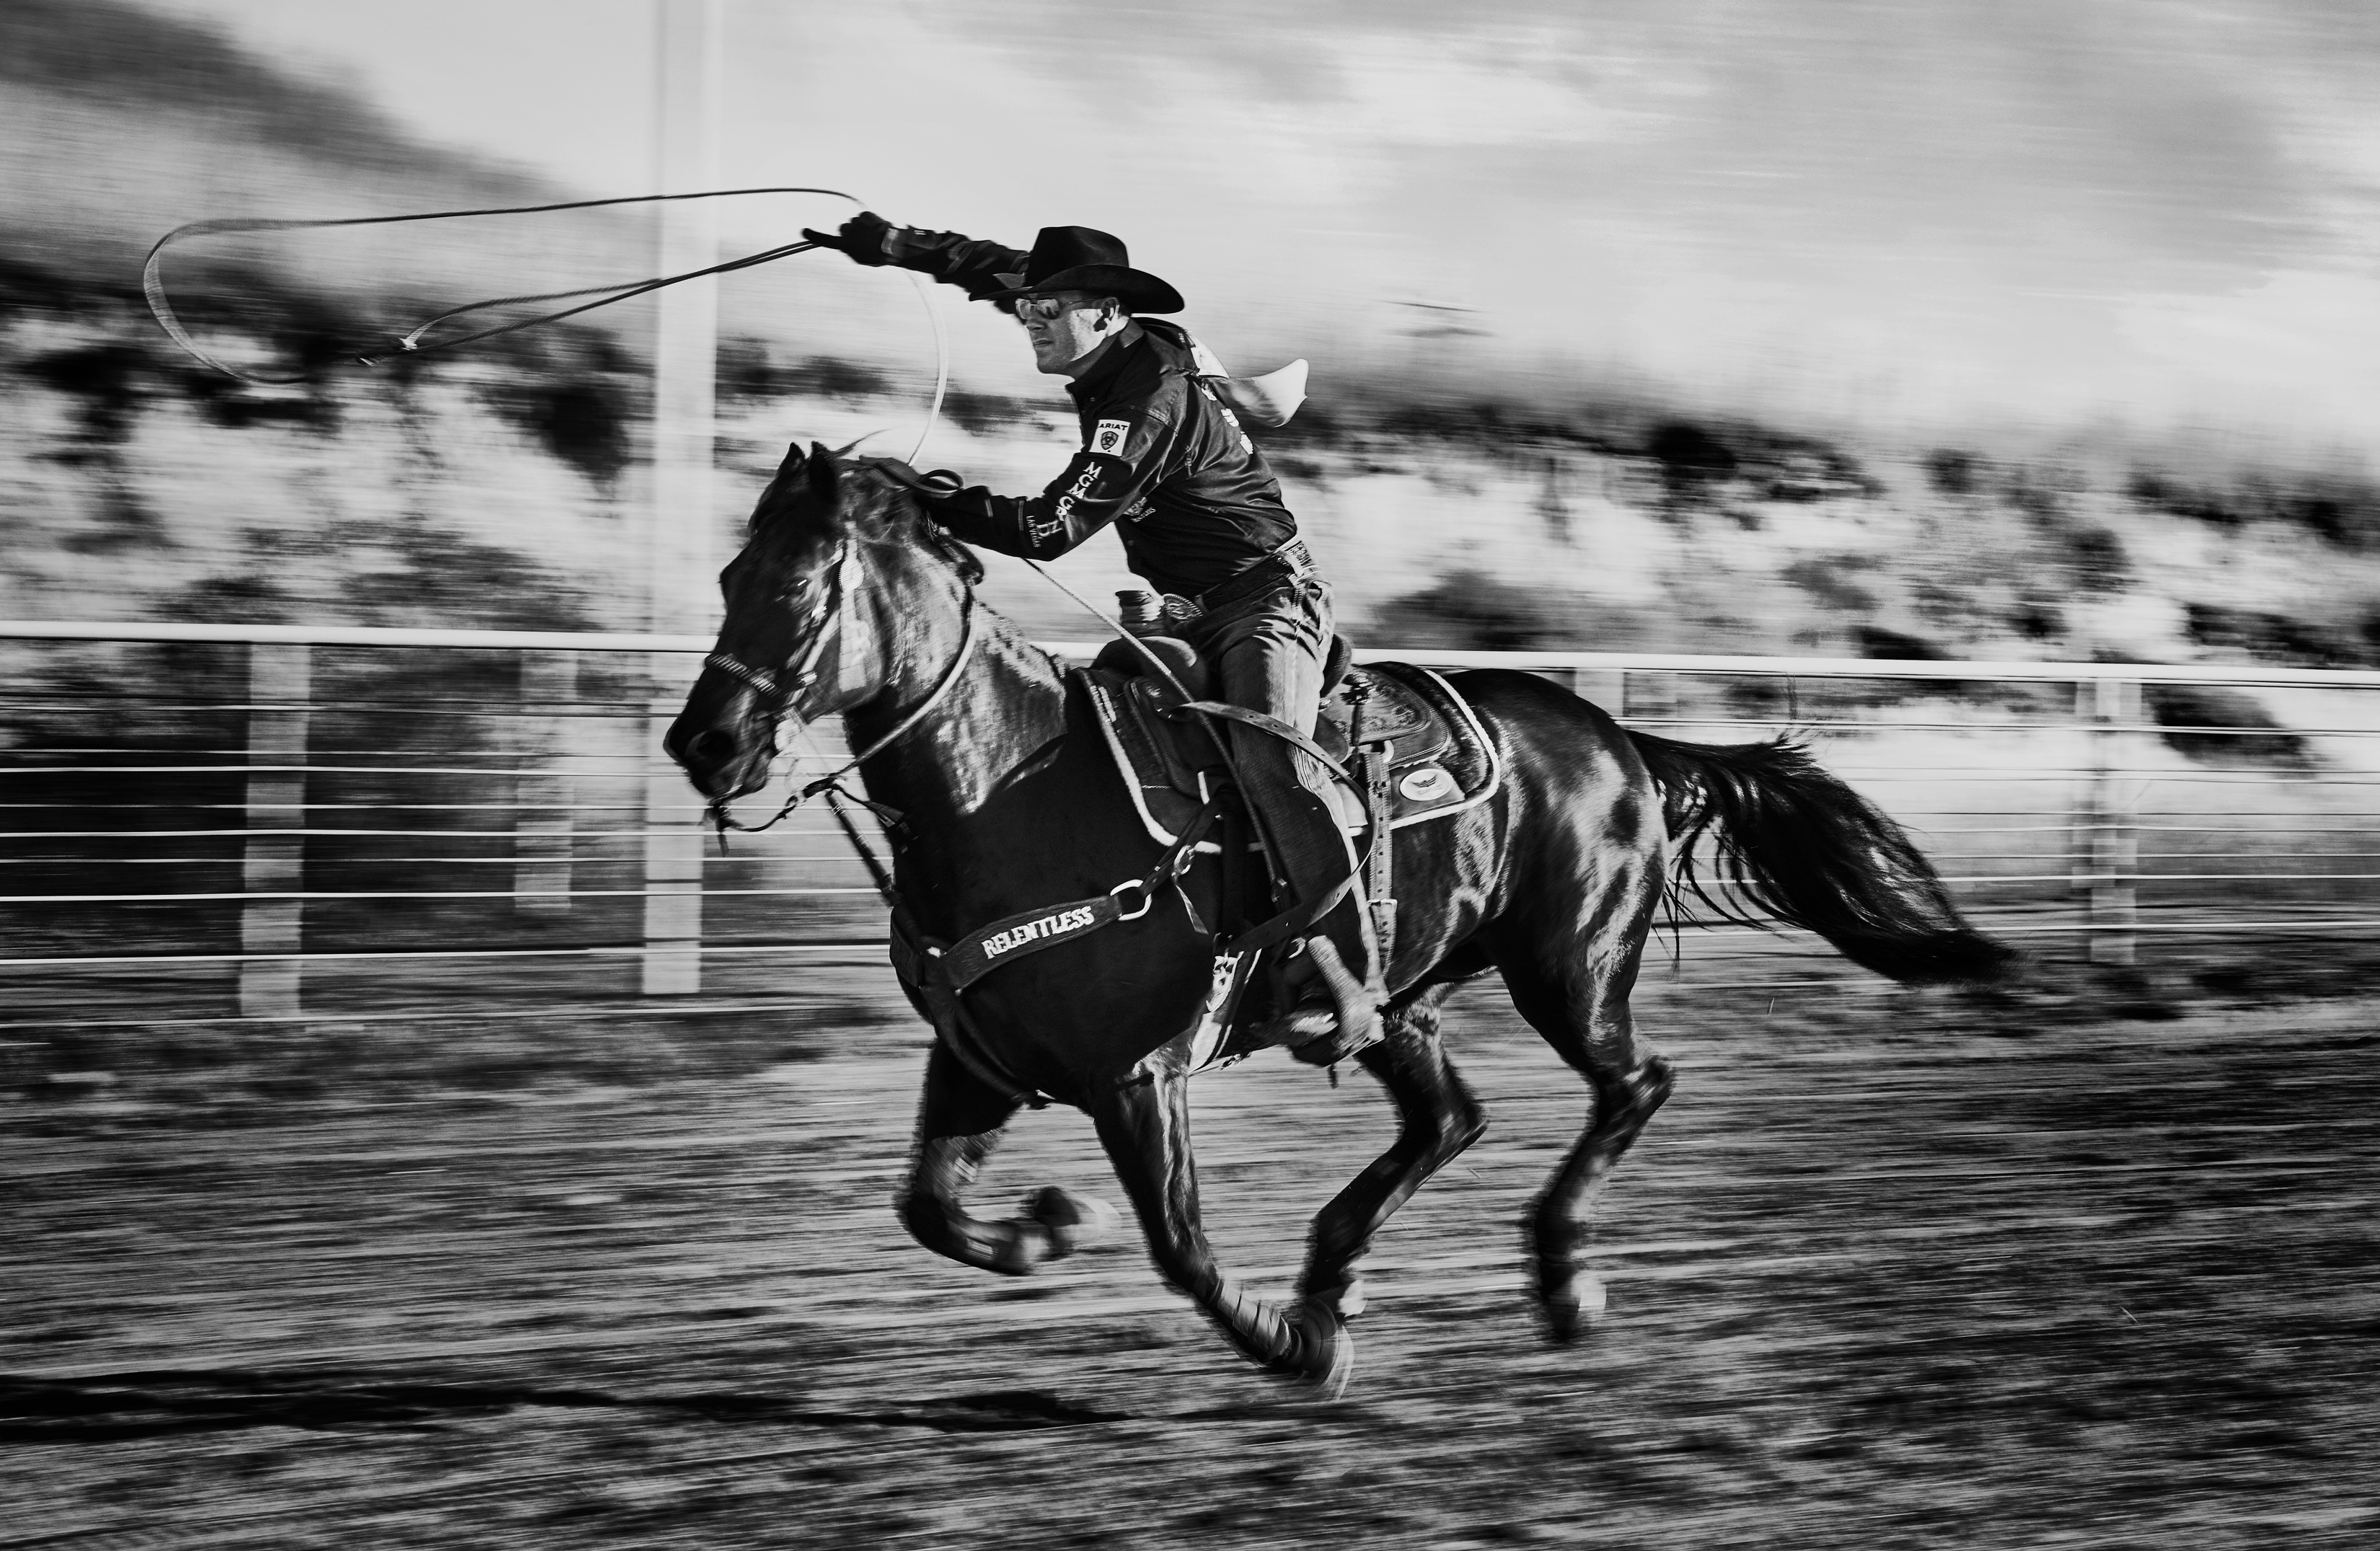 Cowboy swinging lasso in air while riding horse in a dramatic black and white scene